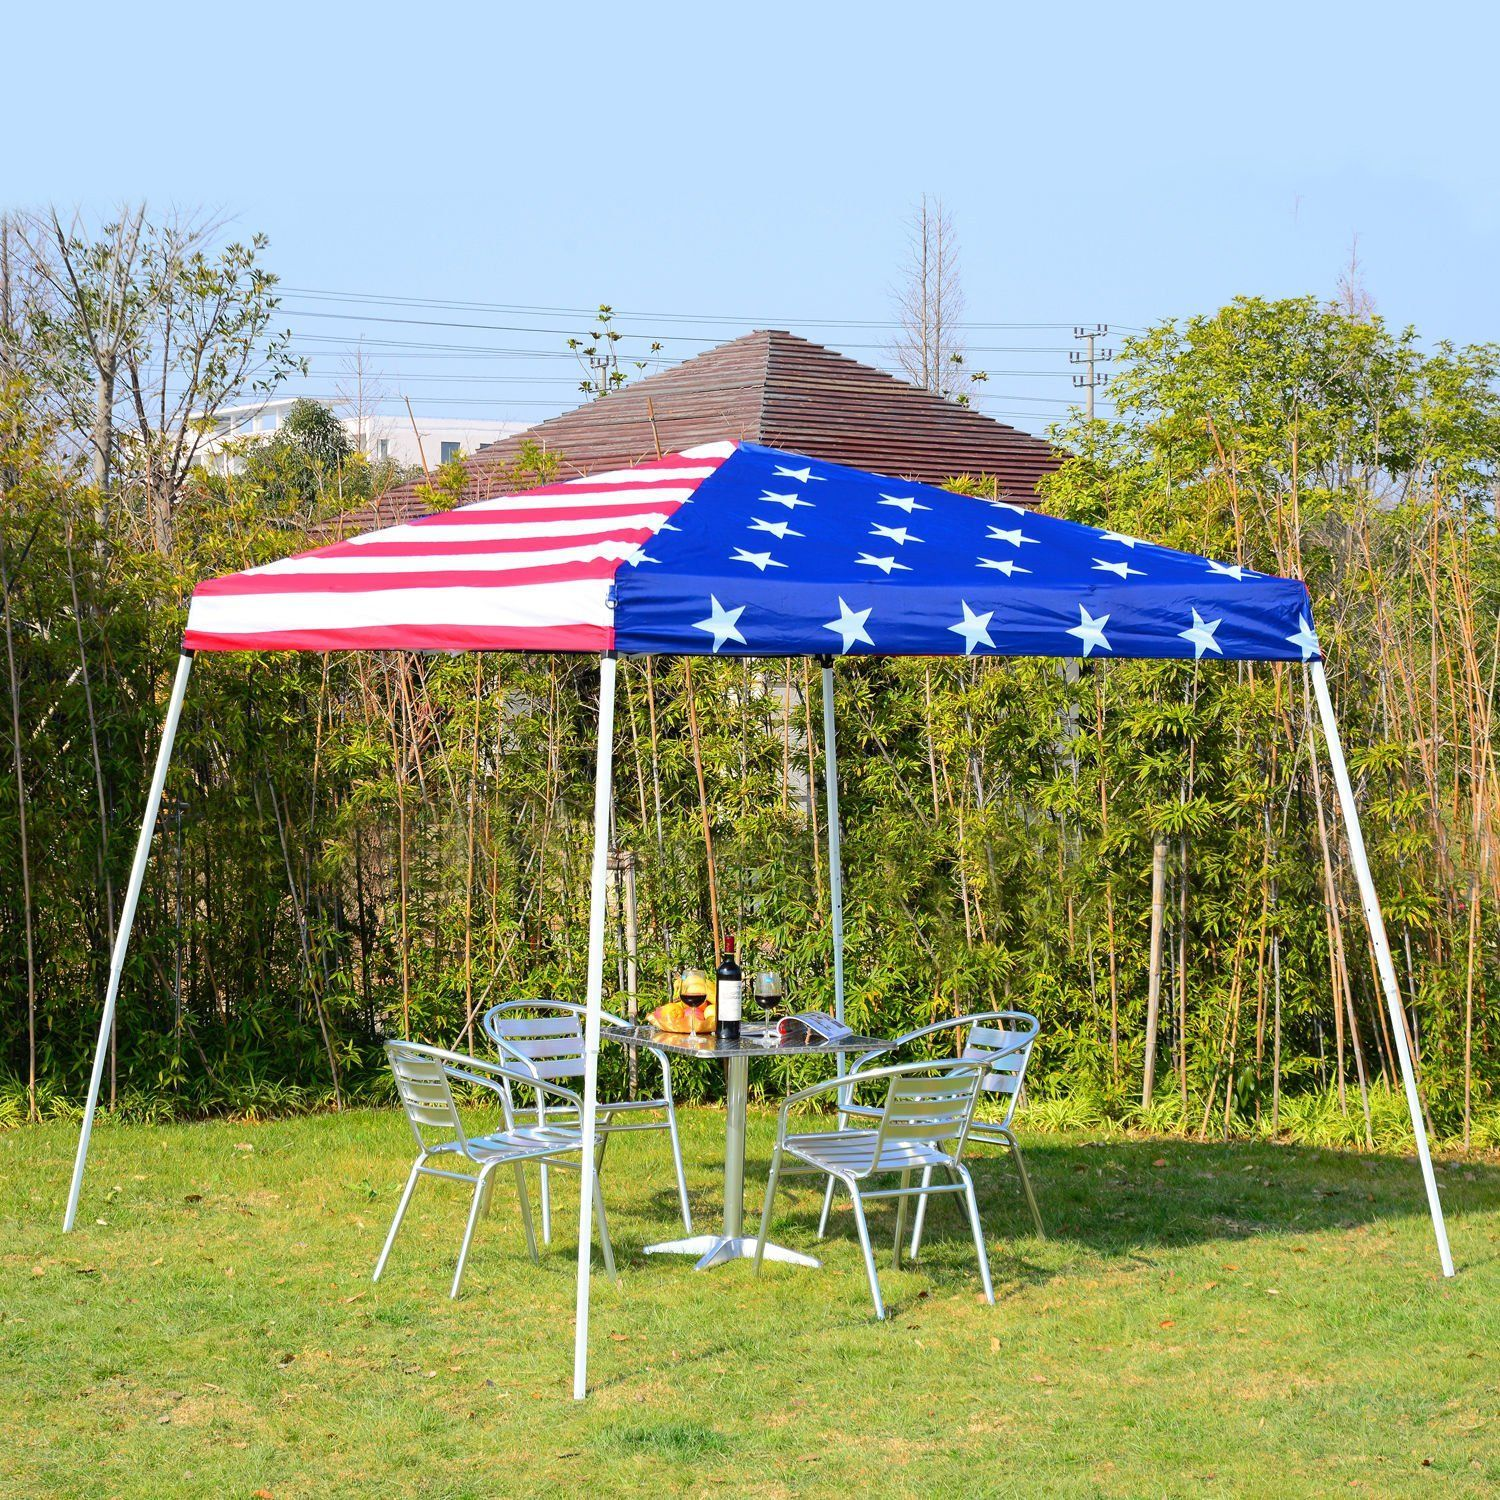 Outsunny 10 X 10 Slant Leg Pop Up Canopy Shelter Party Tent American Flag Patiofurnitureset Informations About In 2020 Canopy Shelter Canopy Outdoor Gazebo Canopy